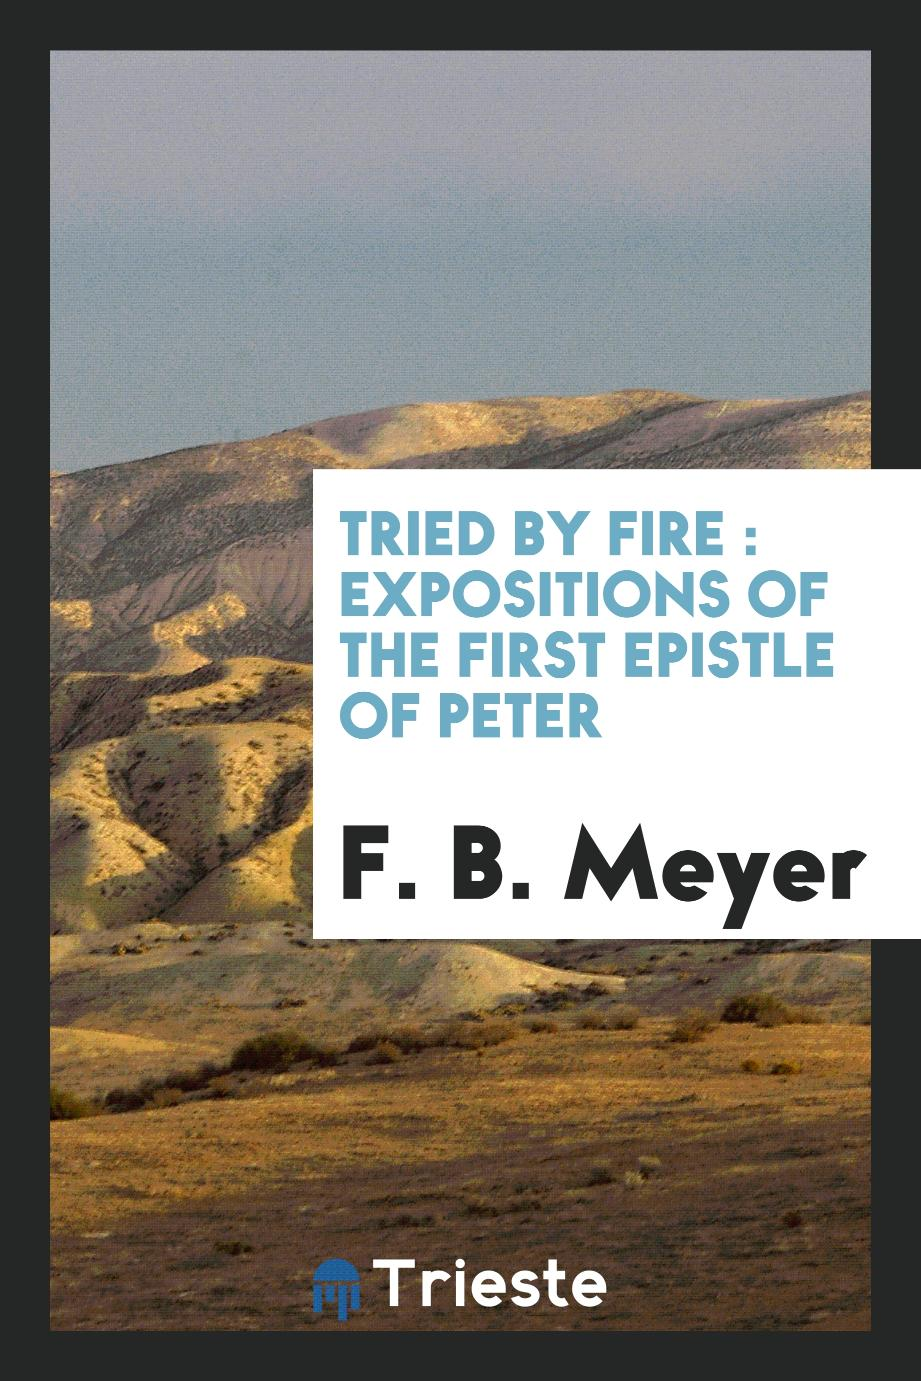 Tried by fire : expositions of the first Epistle of Peter